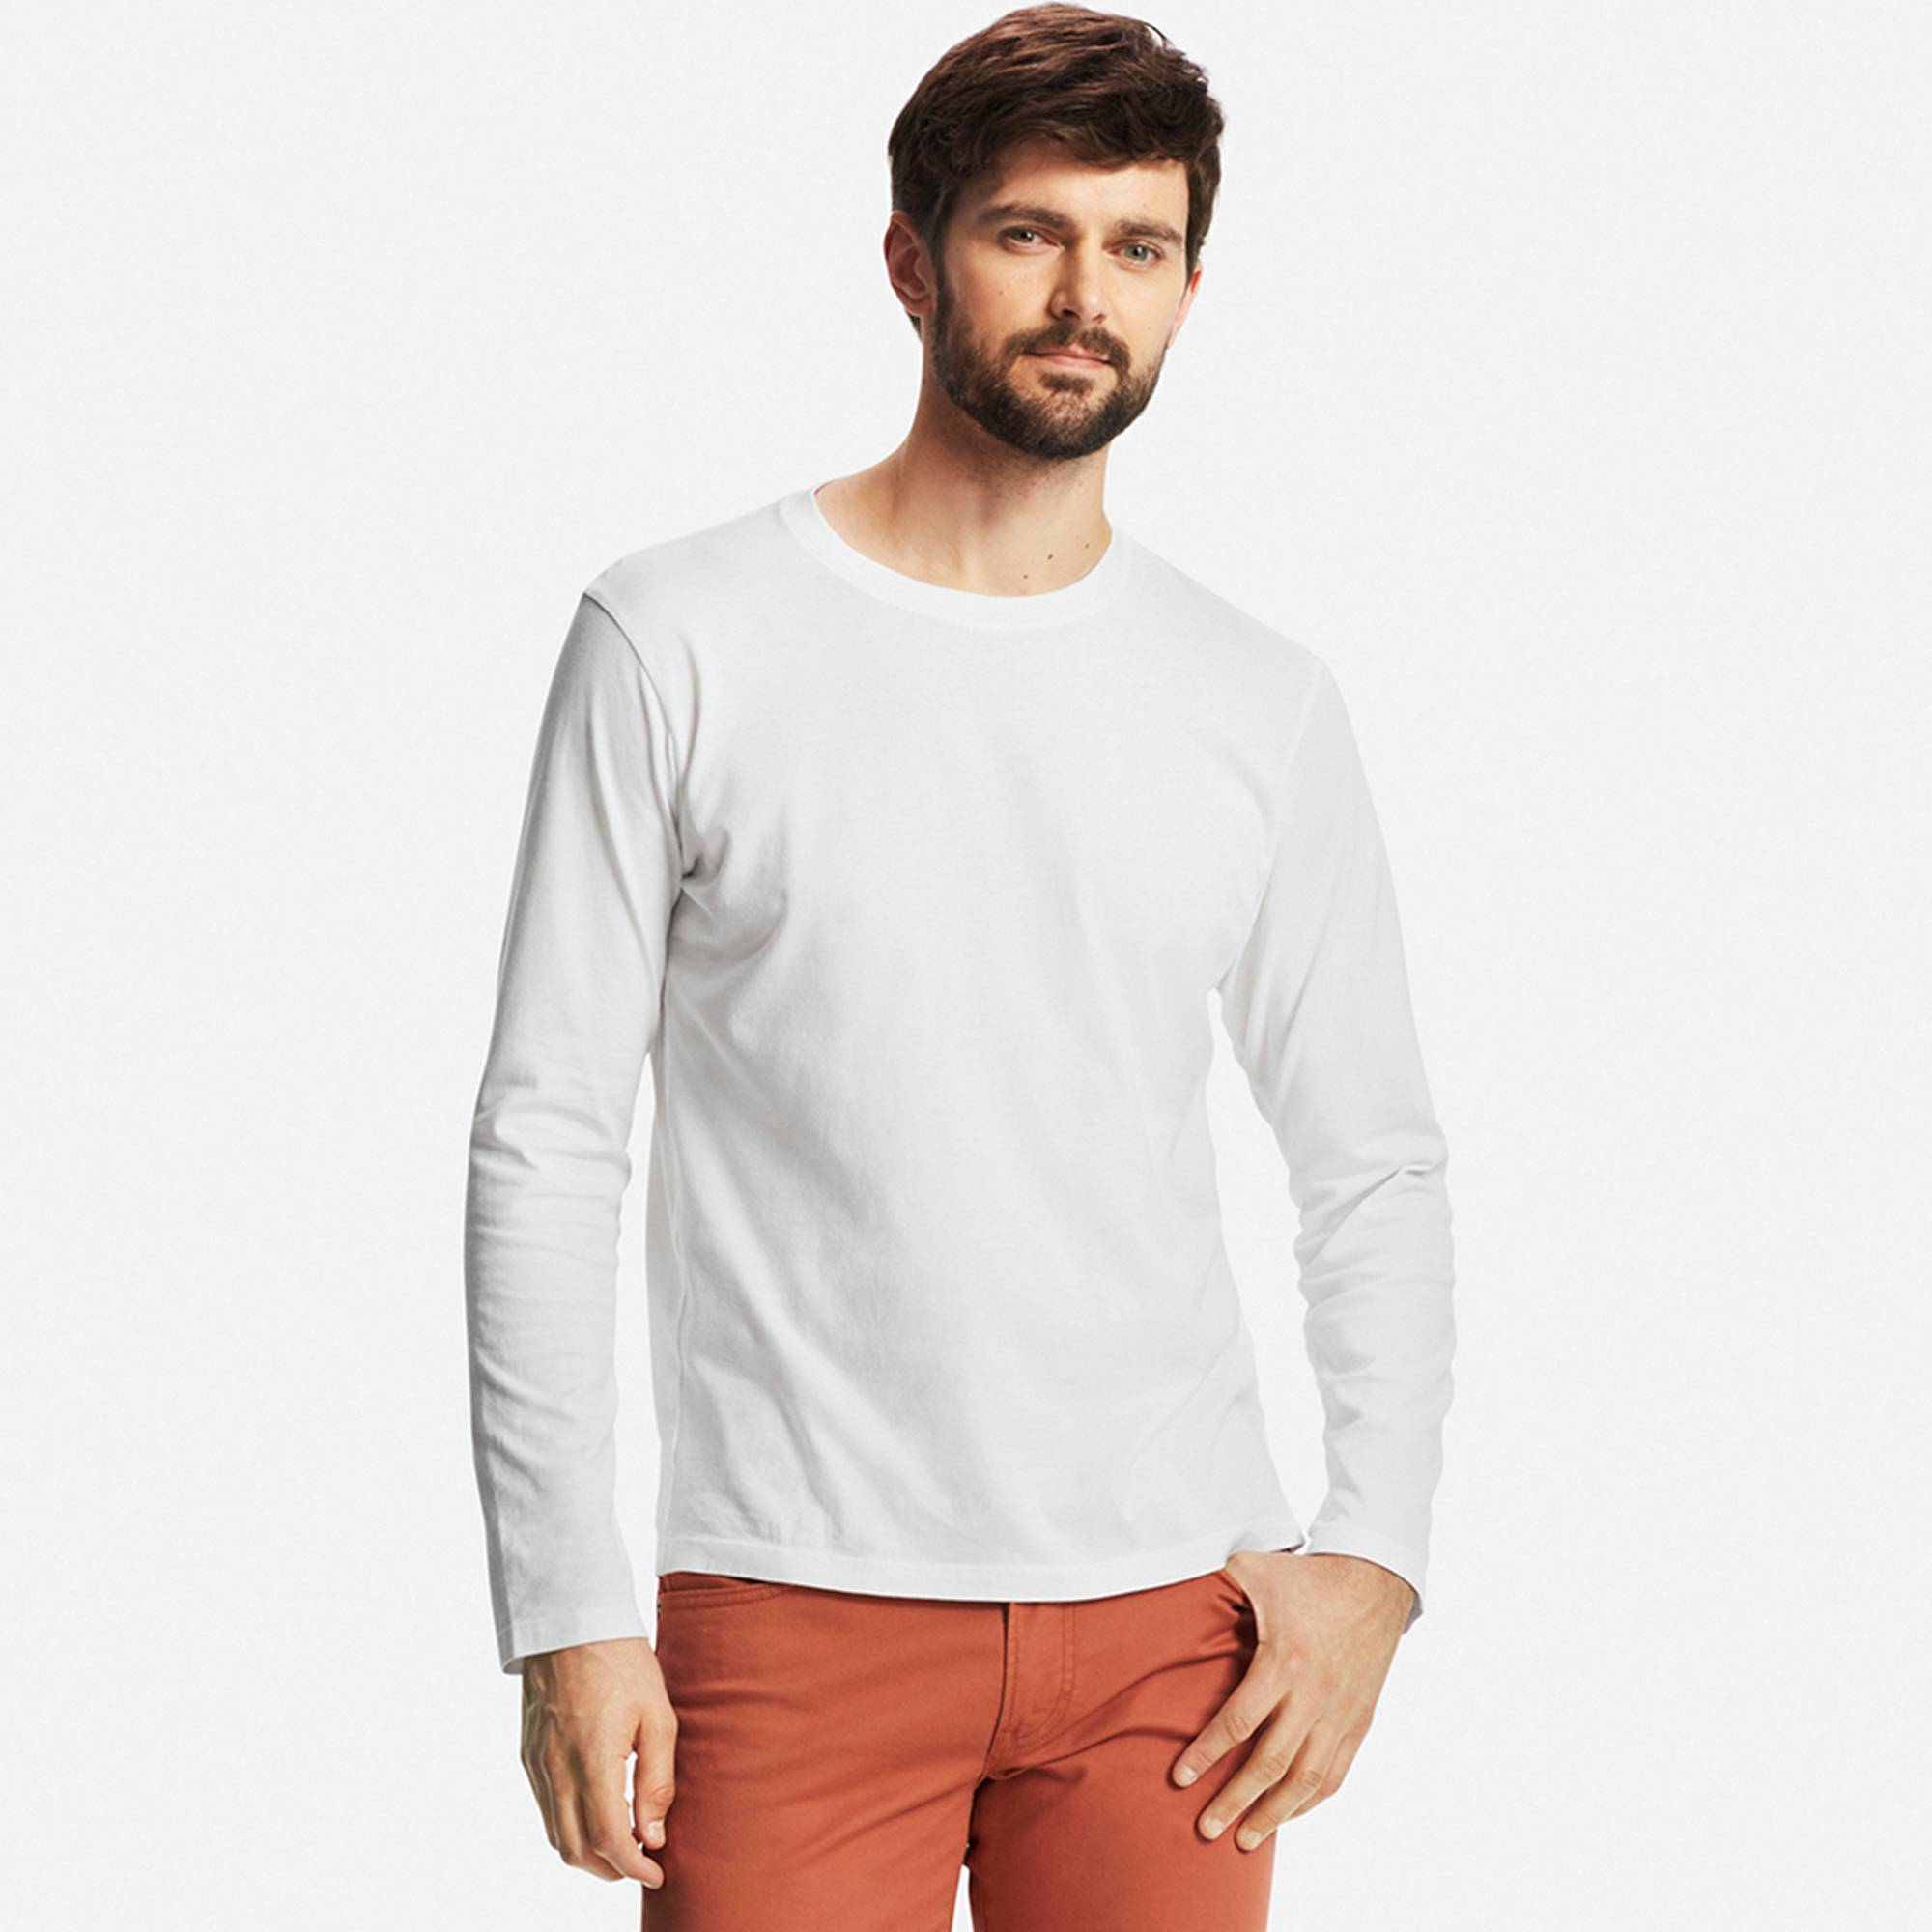 Men's Supima® Cotton Long Sleeve Crew Neck T-Shirt | UNIQLO US